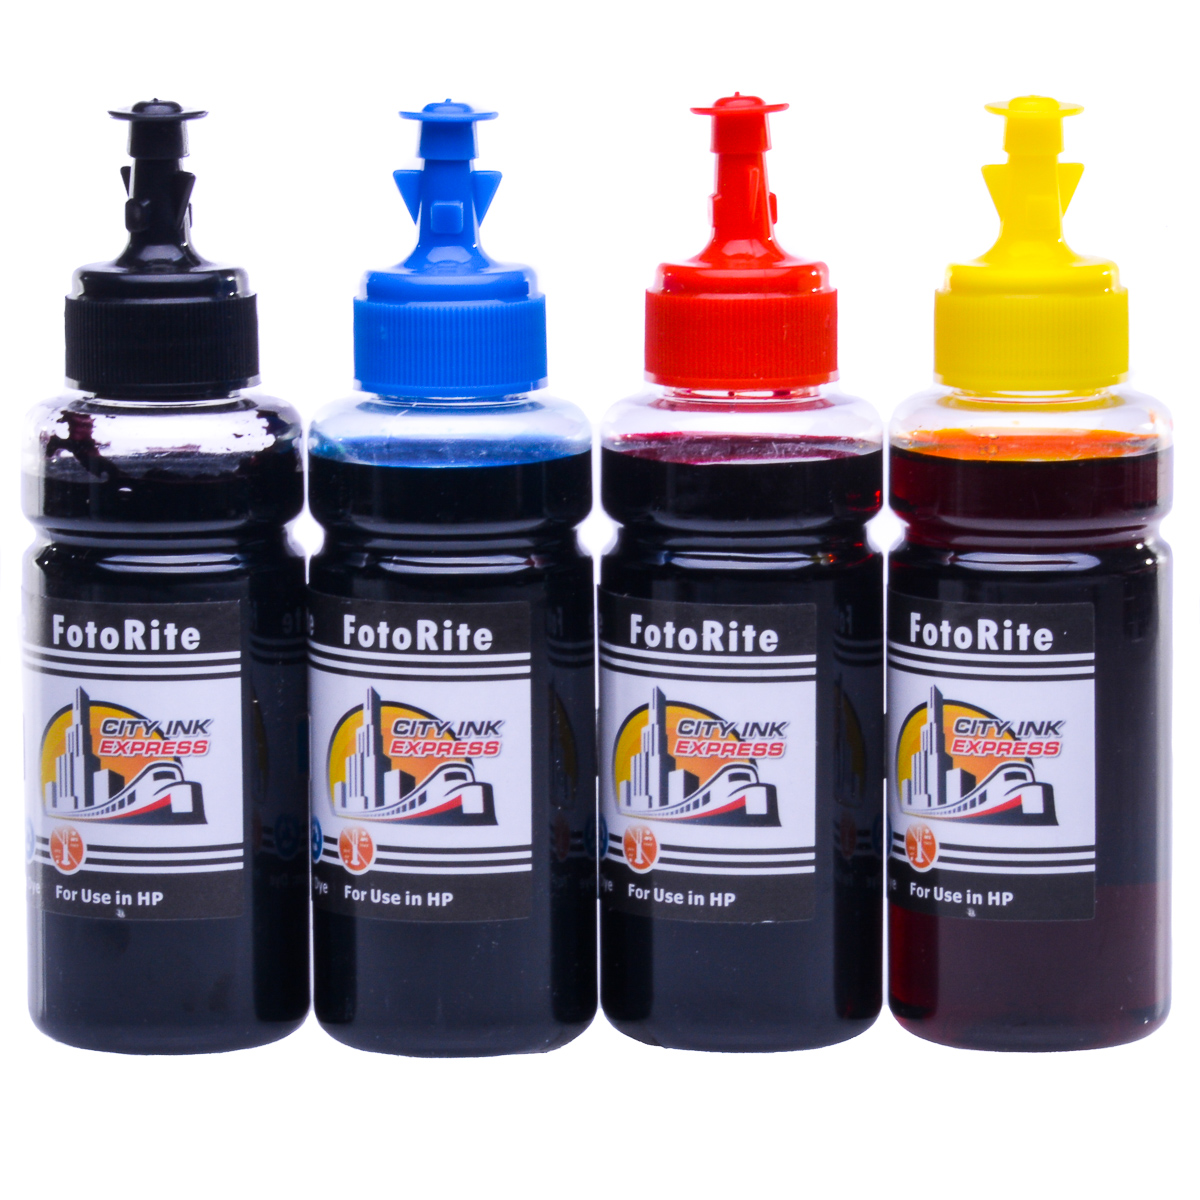 Cheap Multipack dye ink refill replaces HP Officejet Officejet 7500